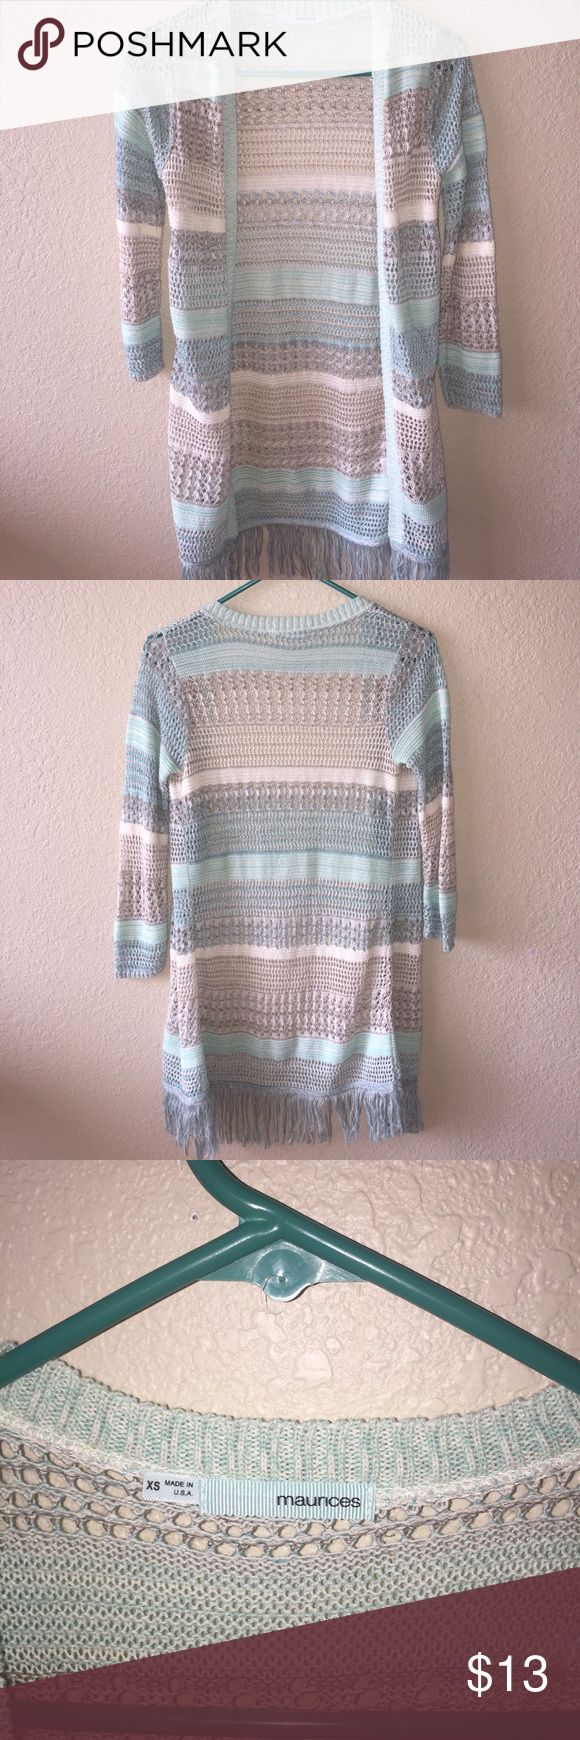 Maurices open front cardigan Size XS MAURICES open front cardigan. Worn a handful of times but in great condition!! Maurices Sweaters Cardigans